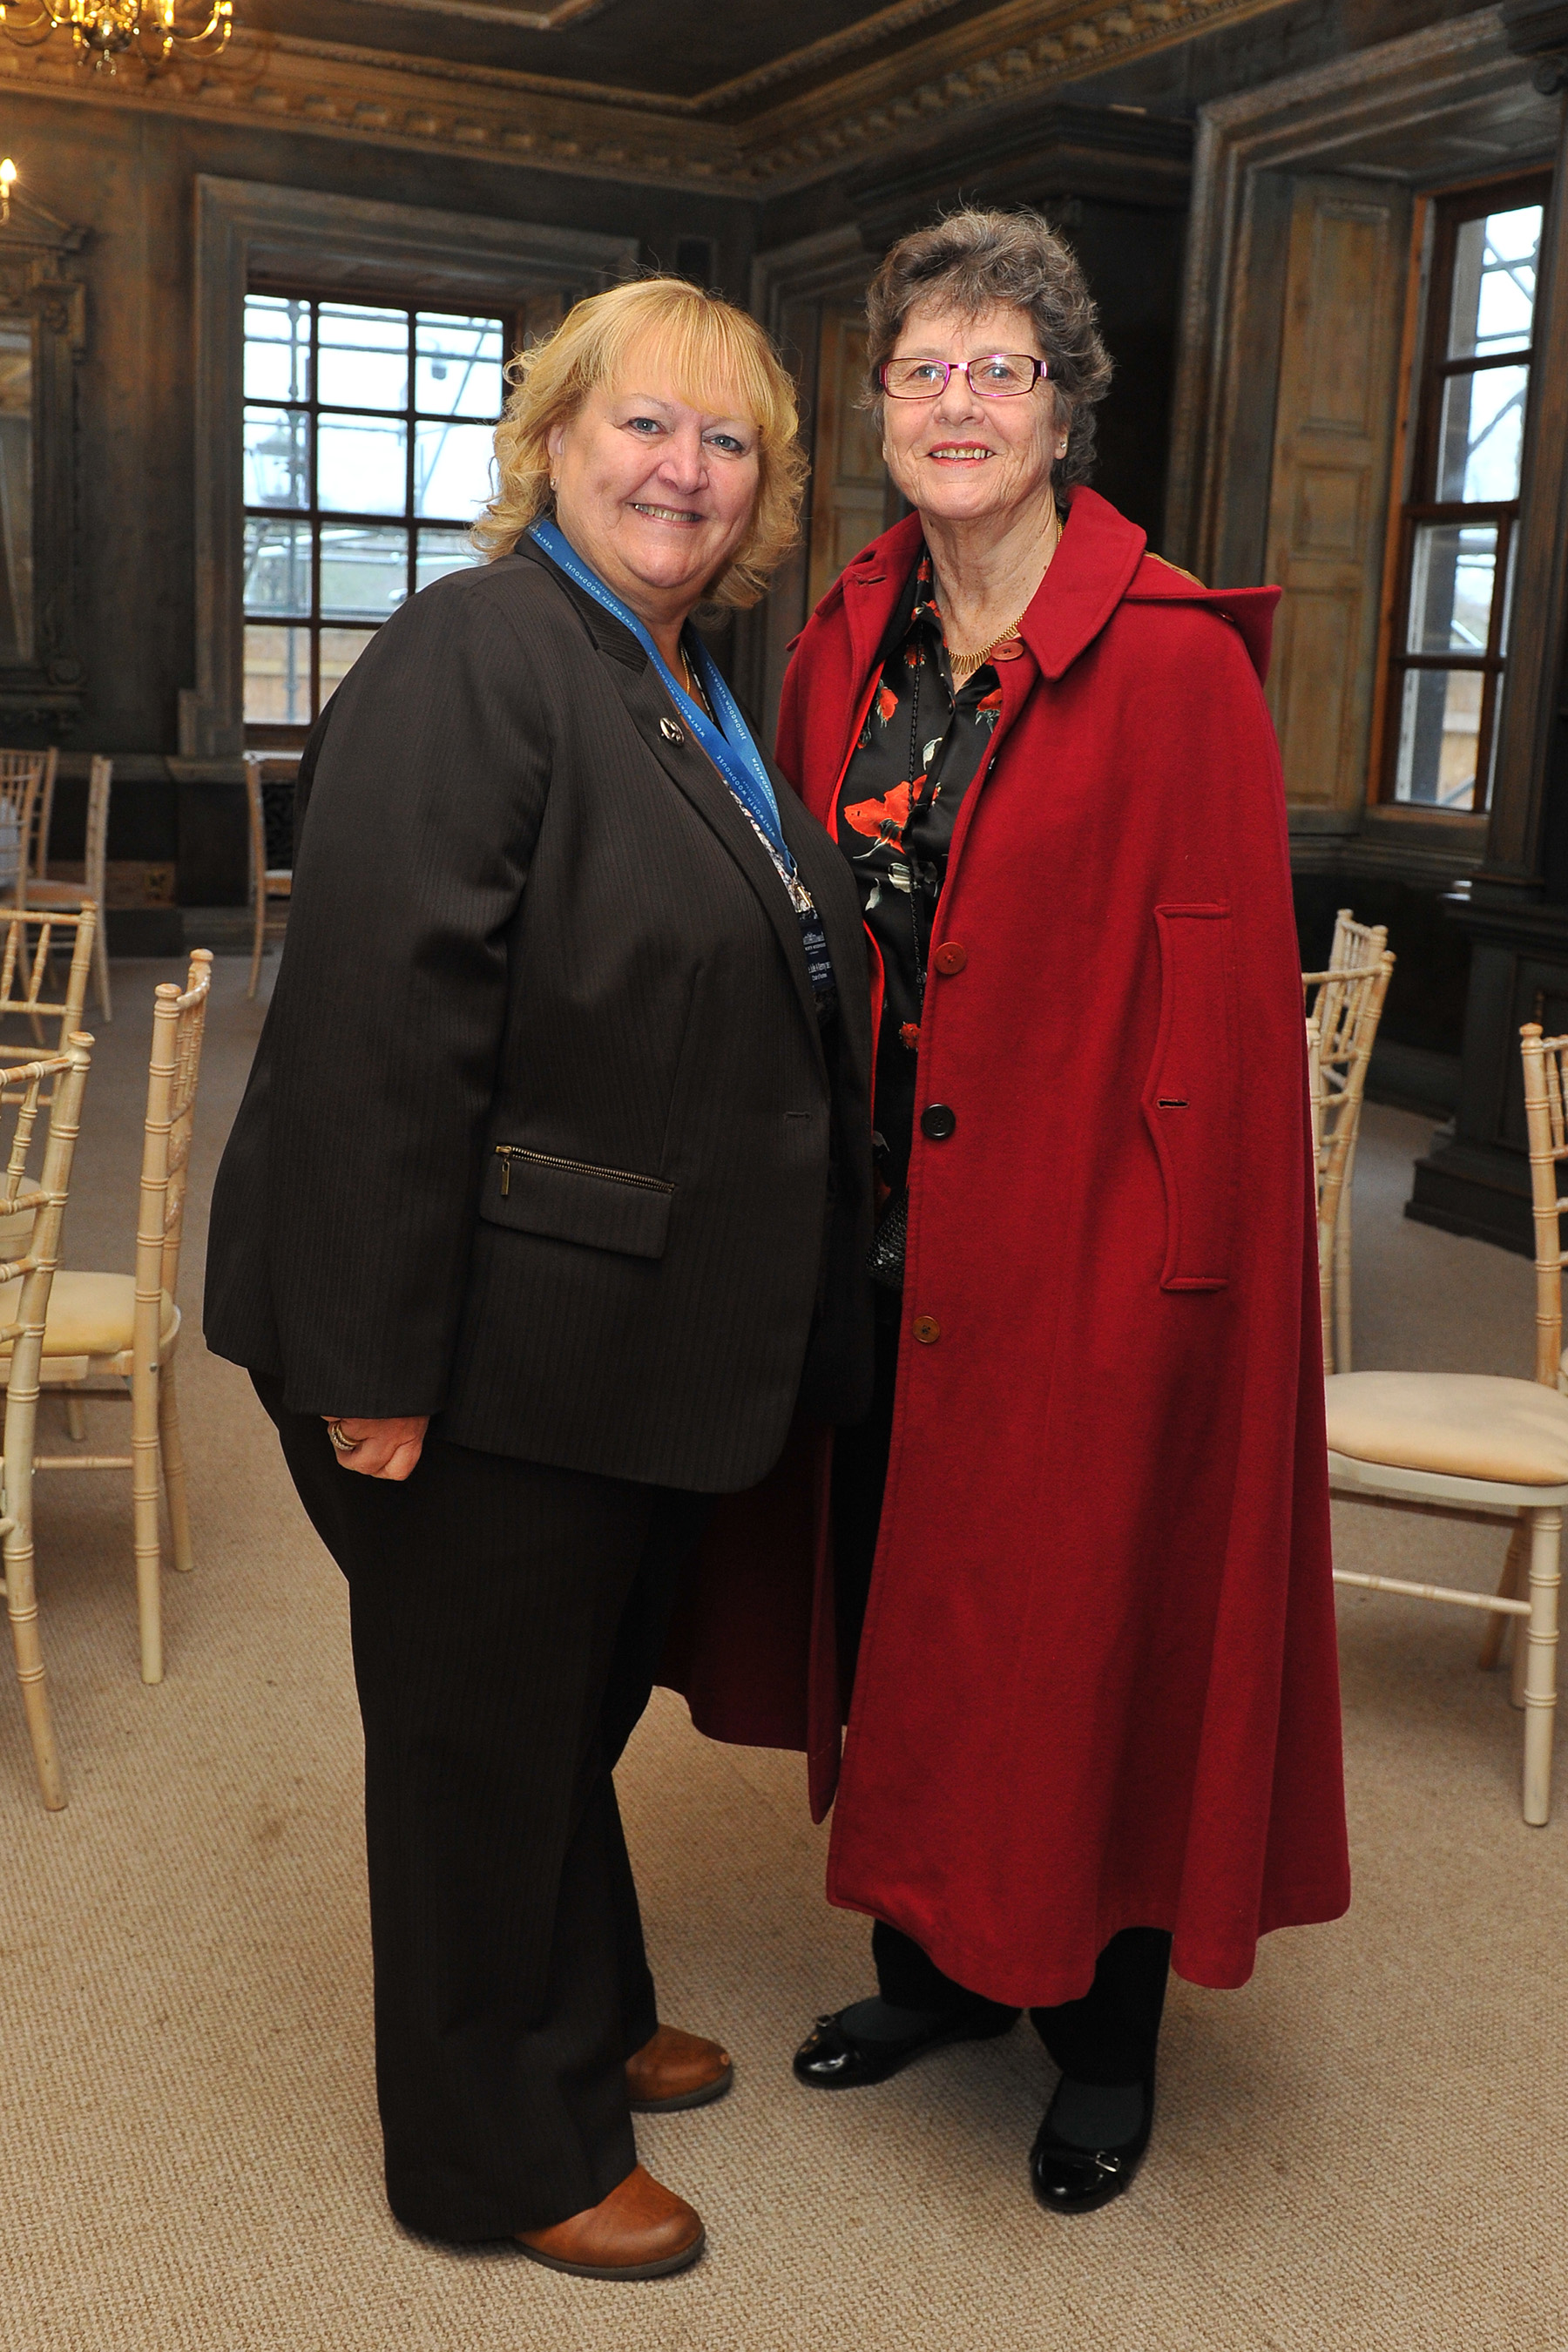 Former students at the Lady Mabel College of Physical Education, recently attended a lunch to celebrate the 70th anniversary of the college's opening. The lunch took place in the Lower Gallery at Wentworth Woodhouse, which used to be their dining room. Seen at the event (left to right) are: Dame Julie Kenny CBE DL, chair of trustees Wentworth Woodhouse Preservation Trust and Sheila Sherwood, Olympic Long Jumper, student from 1964-1969.